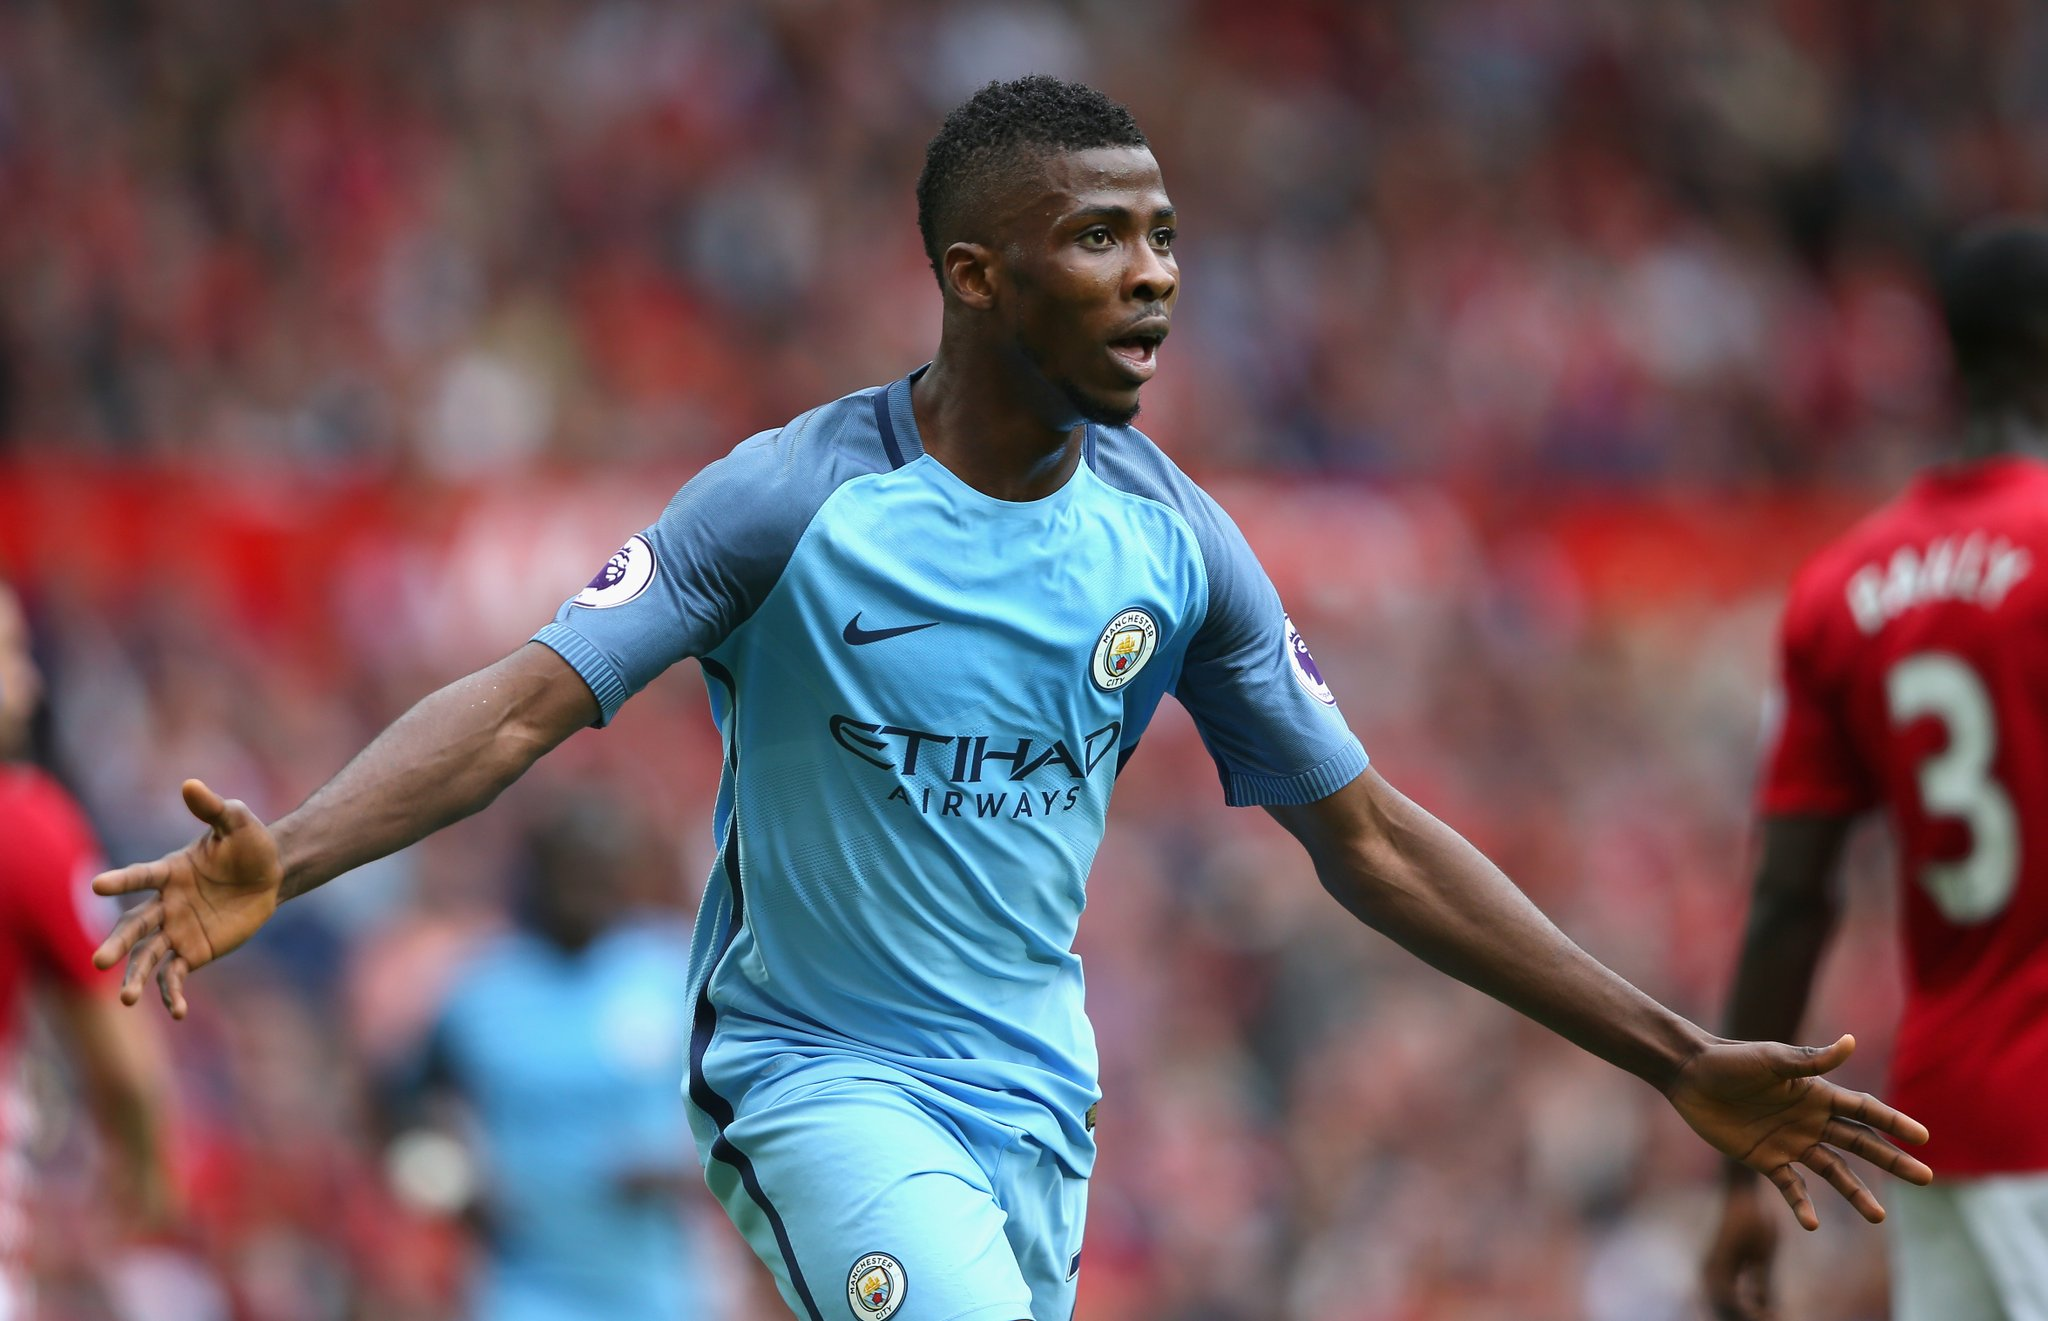 Spanish Media Rate Iheanacho High After Manchester Derby